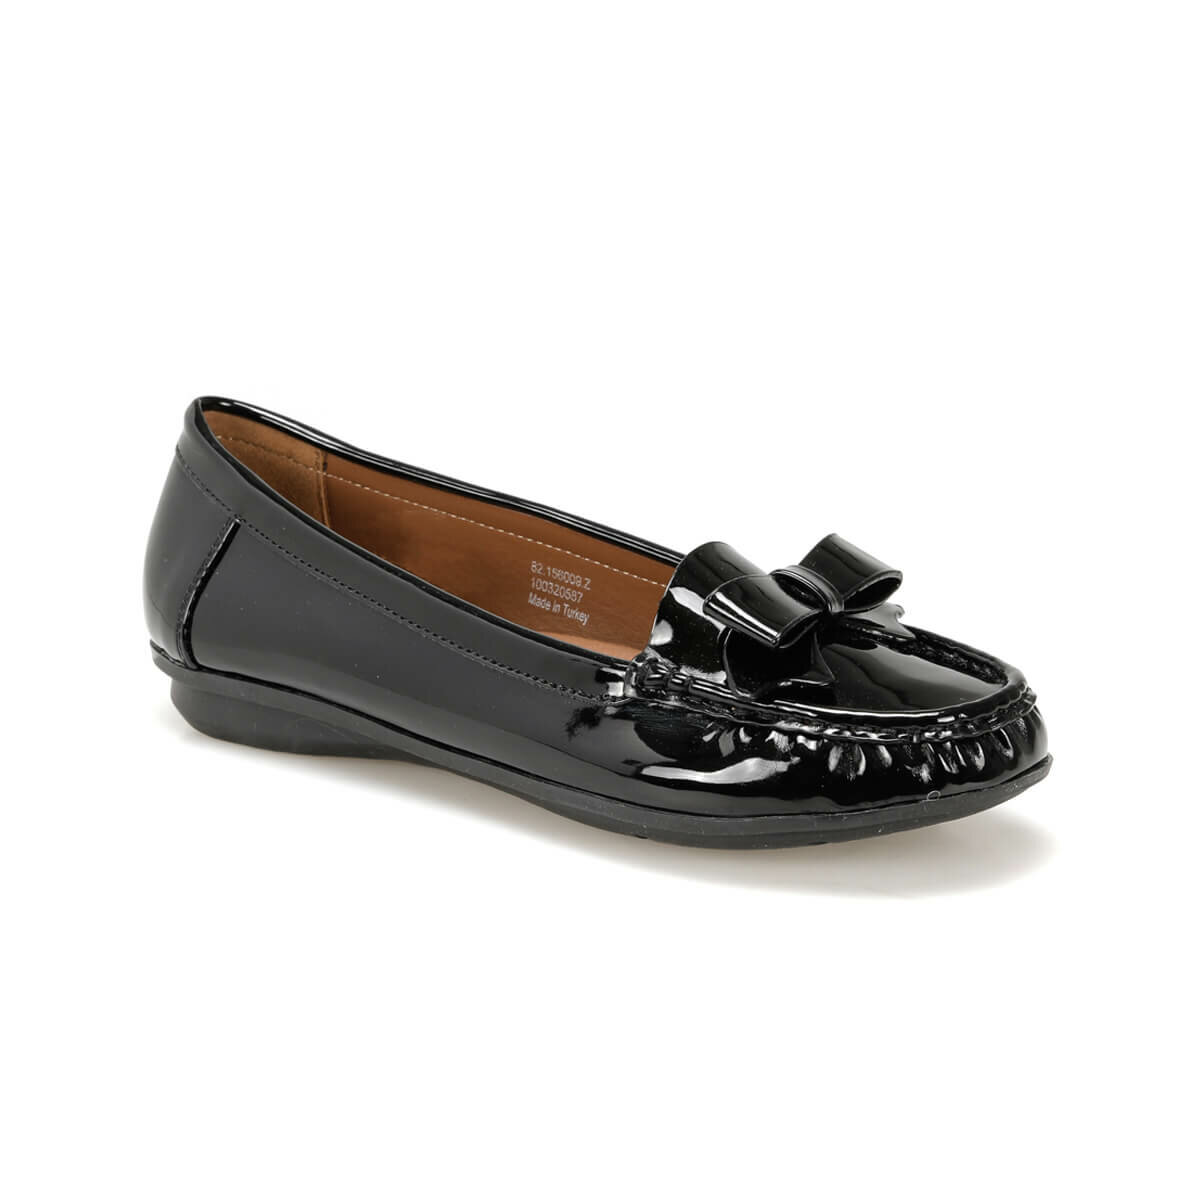 FLO 82.156009.Z Black Women Shoes Polaris